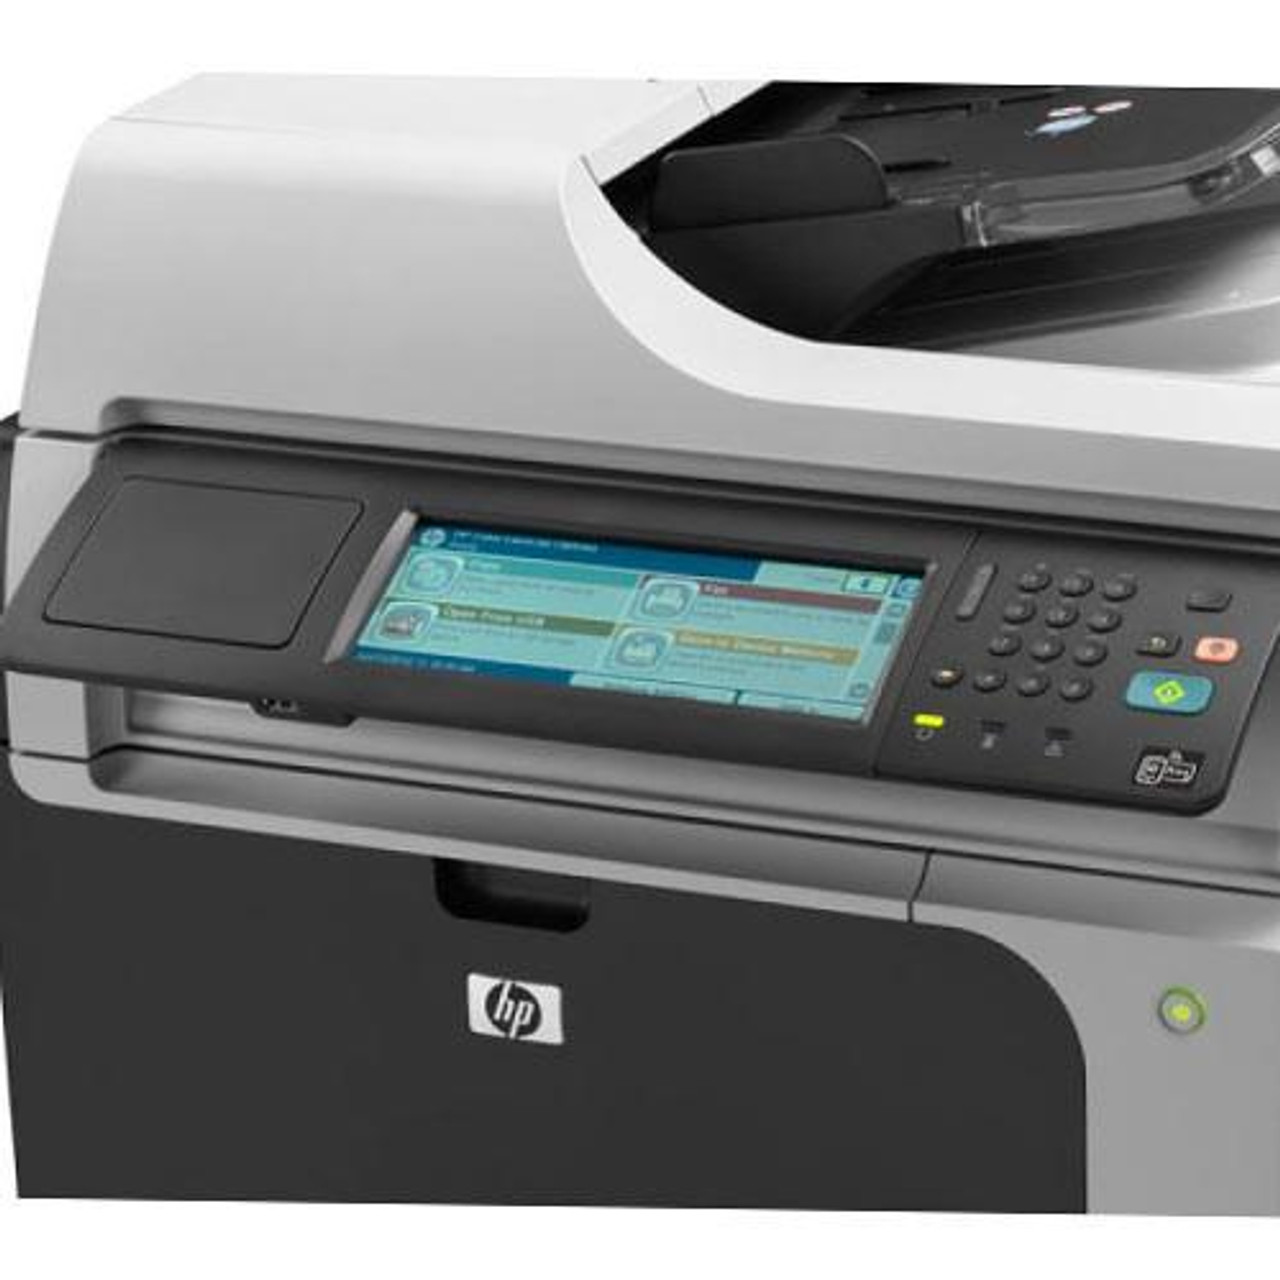 HP Color LaserJet CM4540f MFP - 42 ppm - 1100 sheet